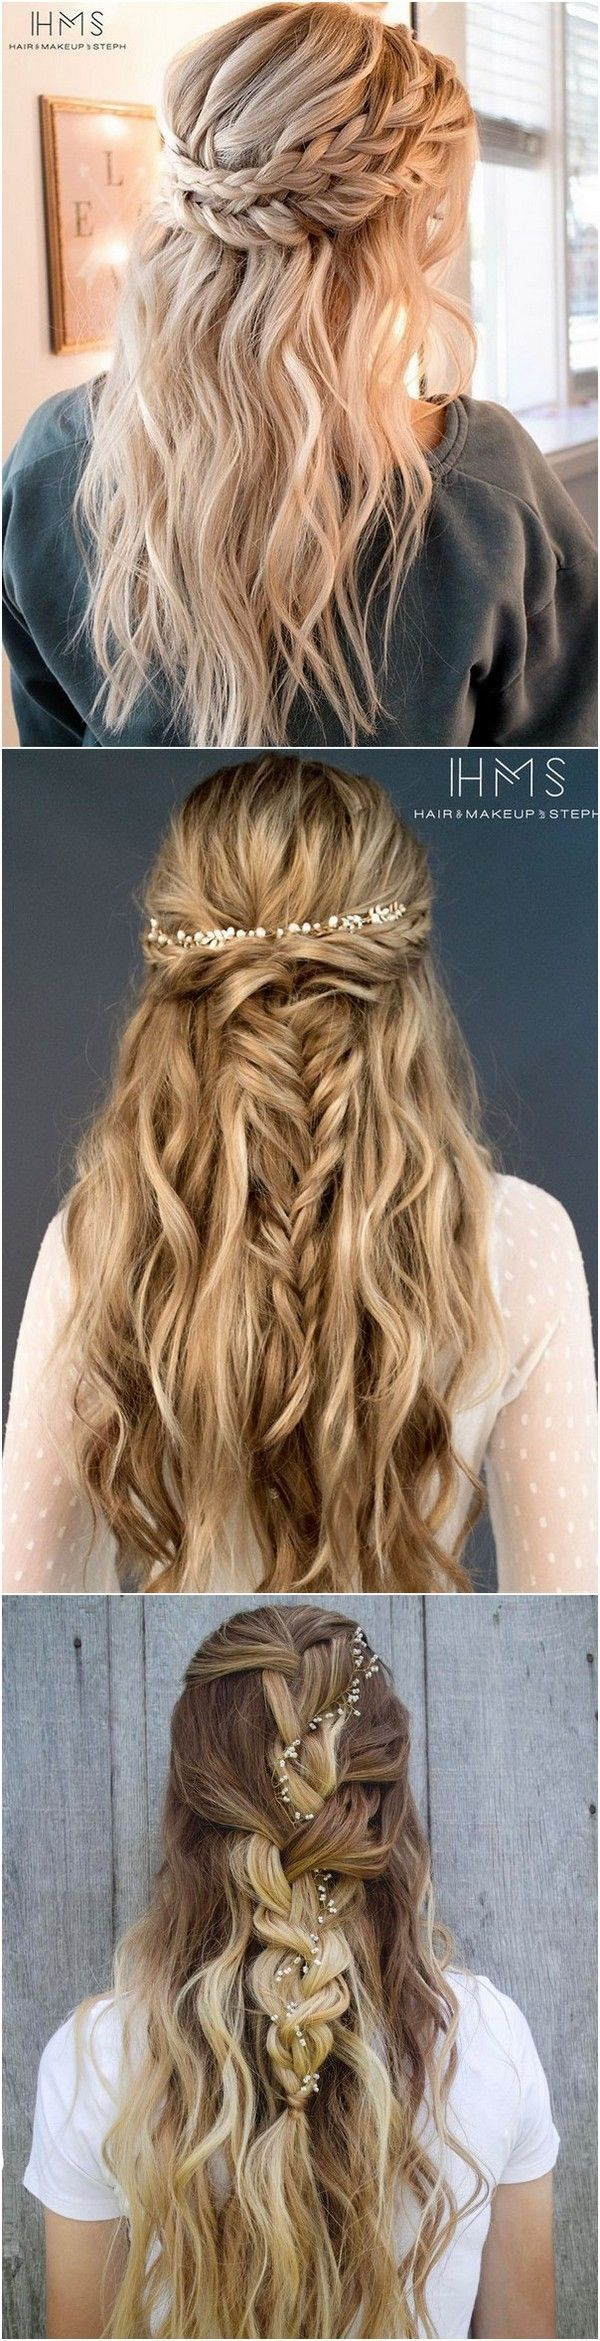 20 Inspiring Wedding Hairstyles from Steph on Instagram+#balayage_hair